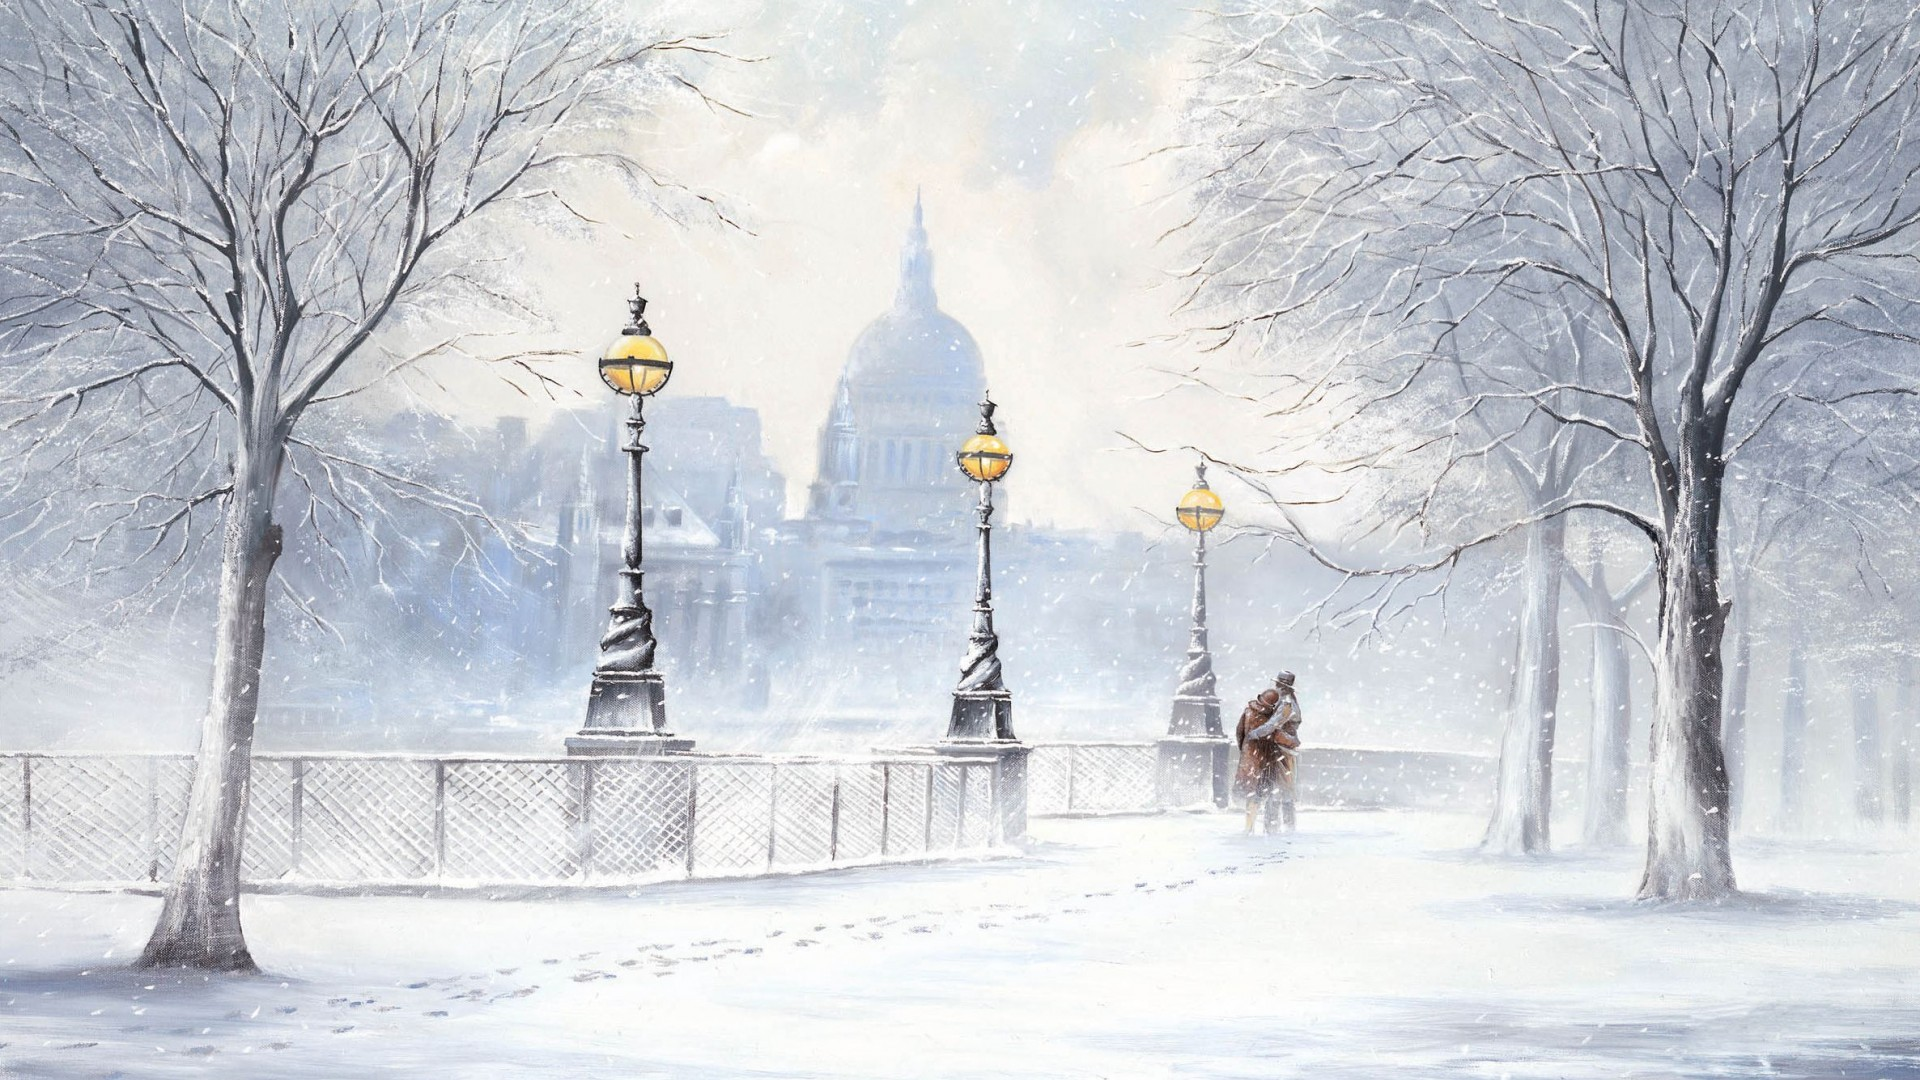 Winter in the City Wallpaper - WallpaperSafari